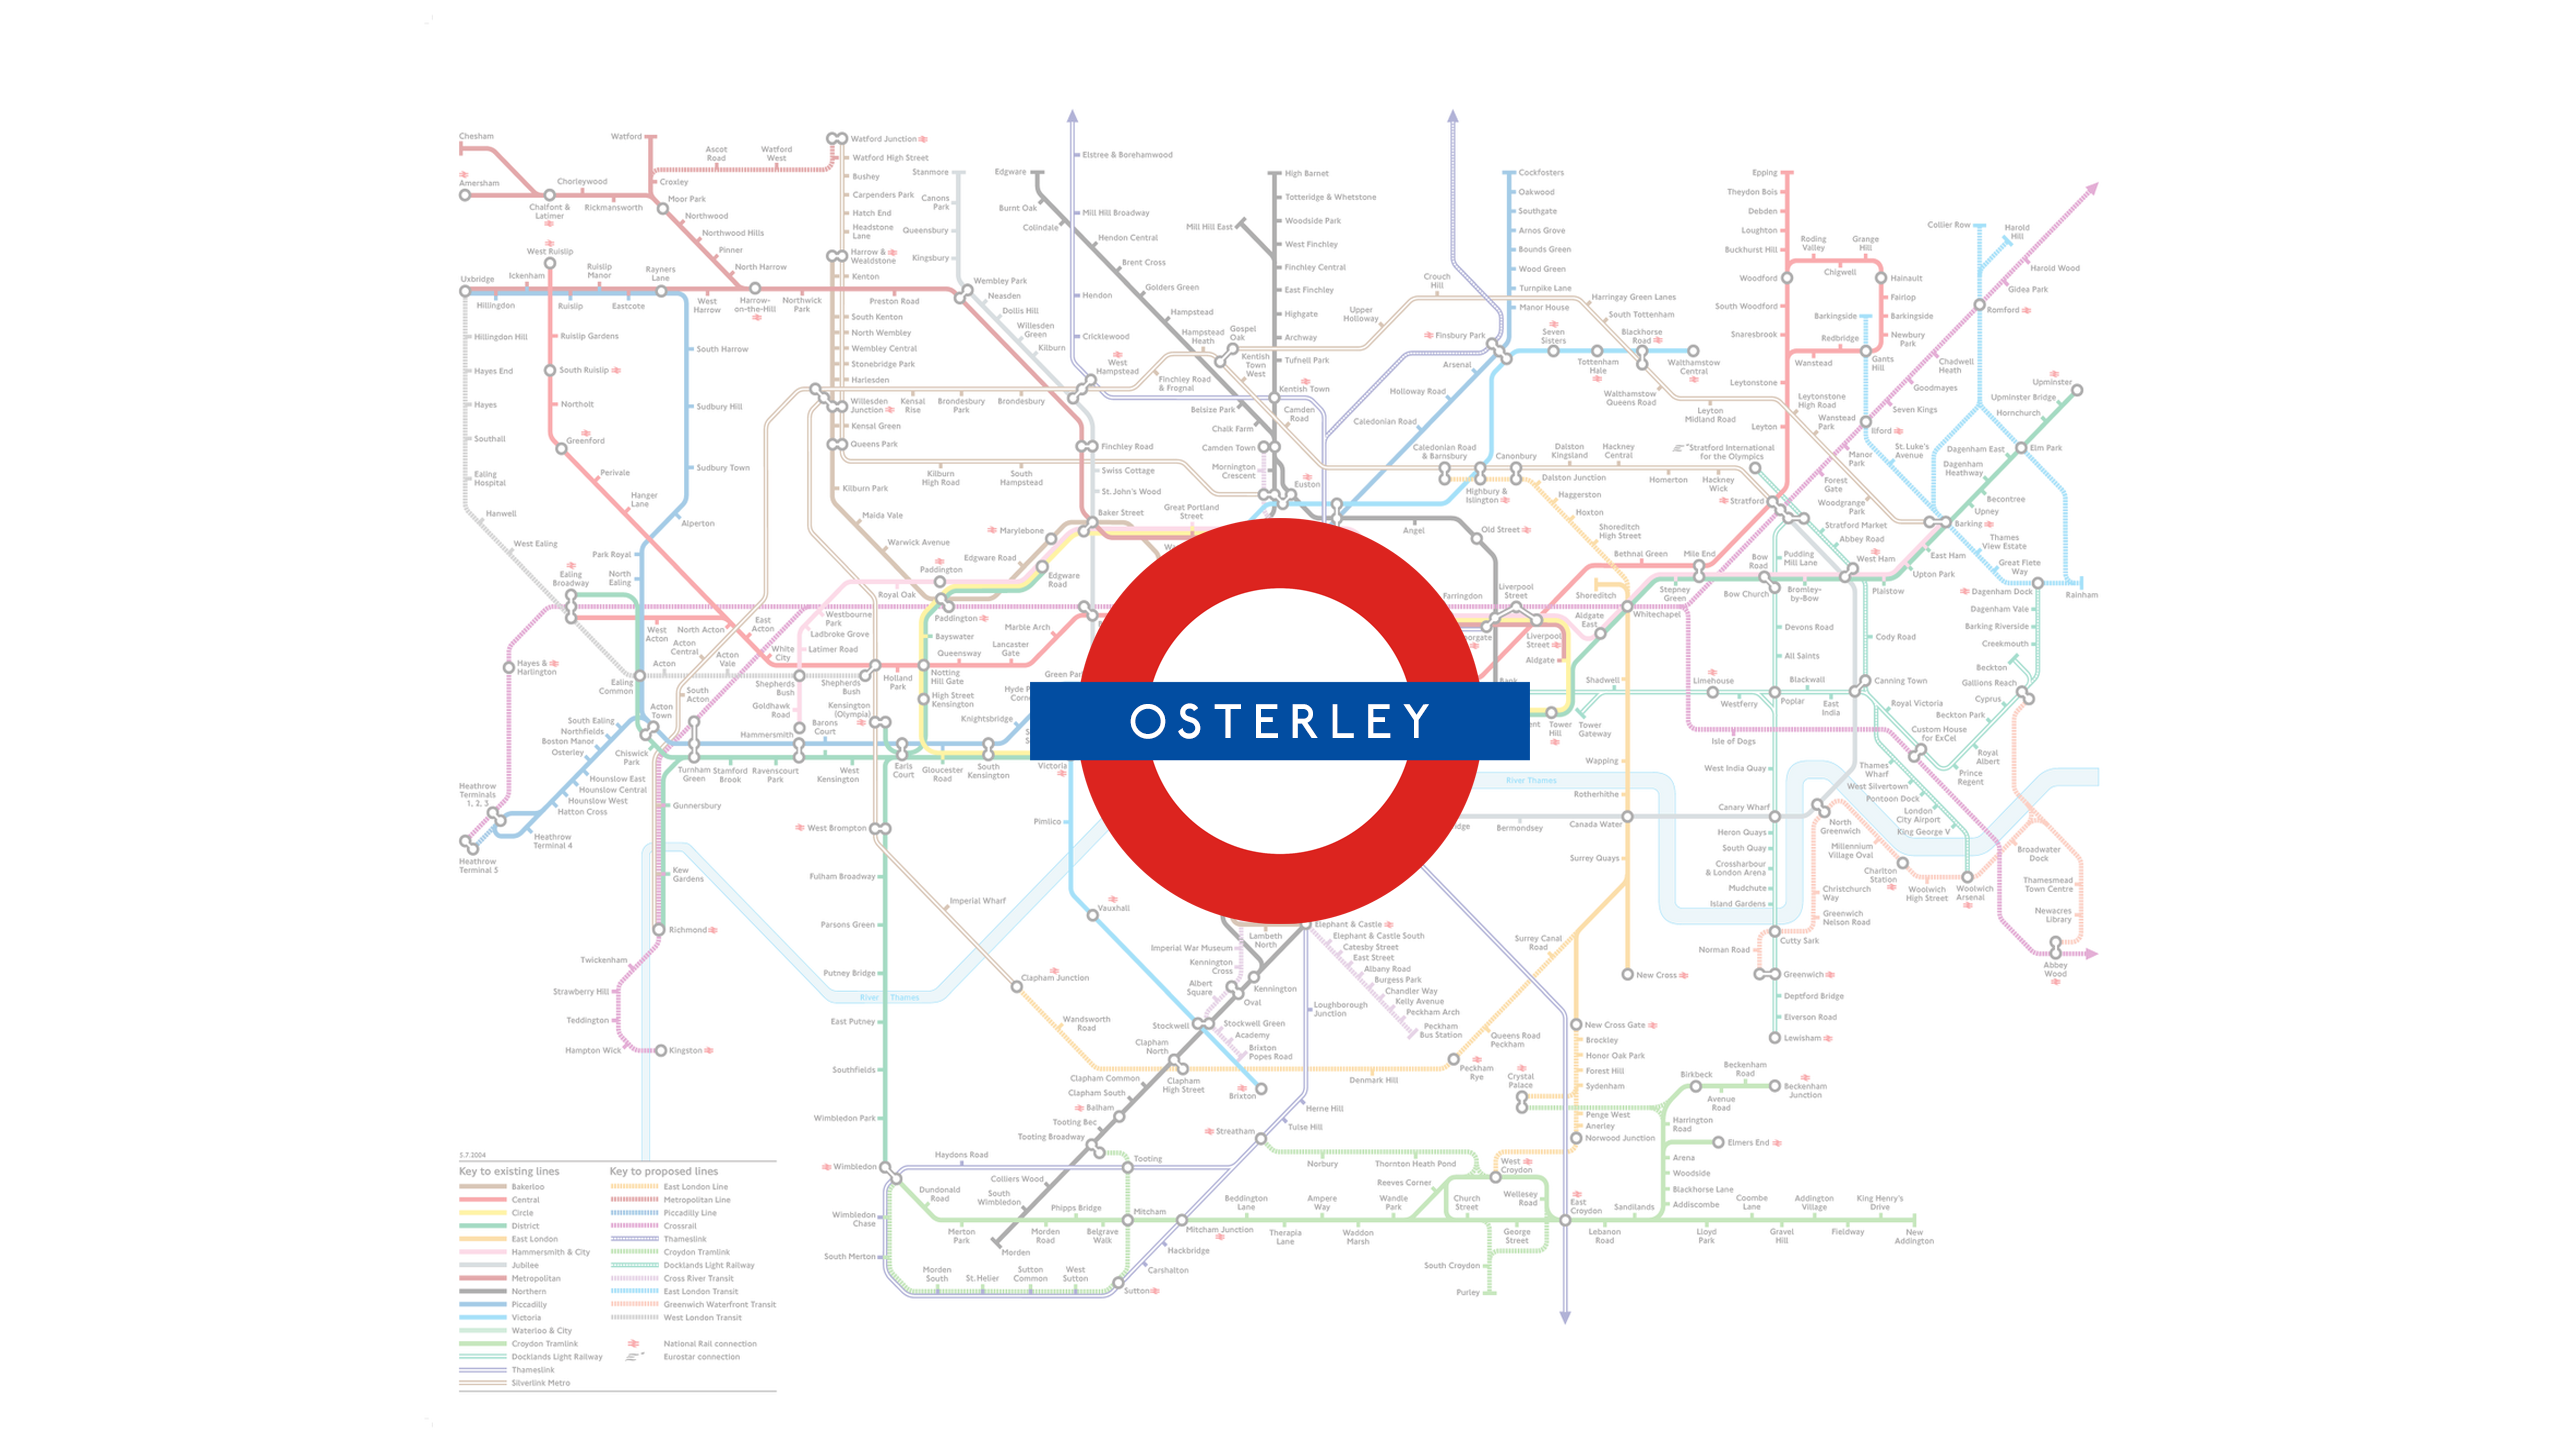 Osterley (Map)